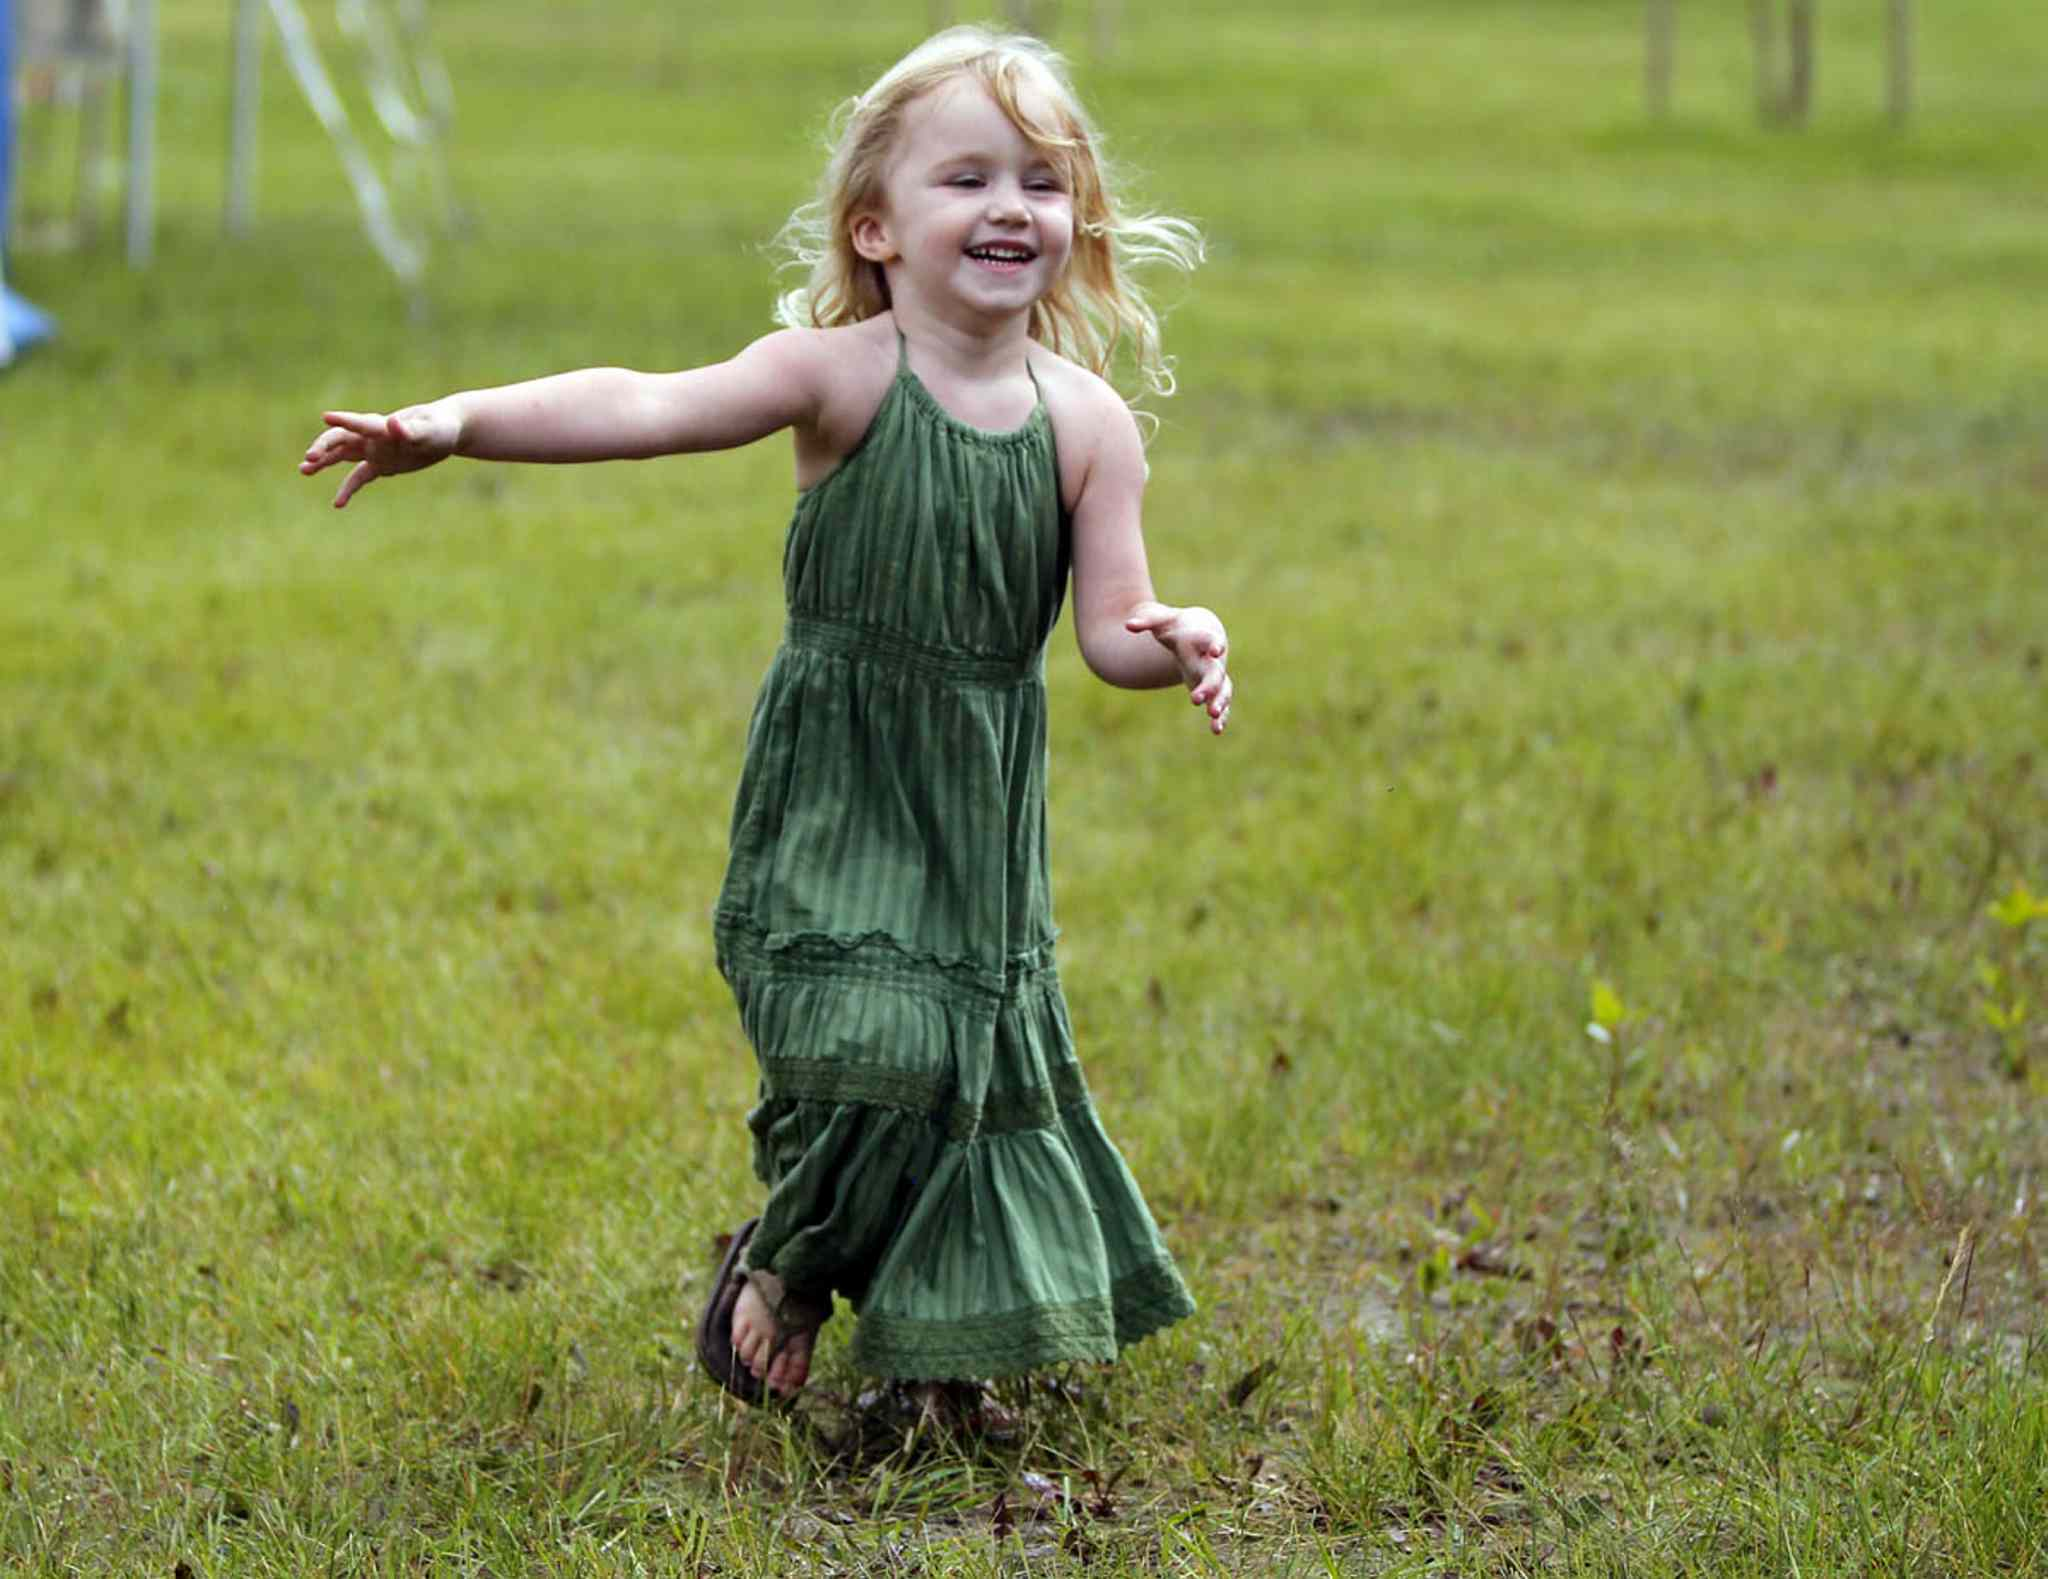 Three-year-old Briar MacDonald runs around as her mom and grandmother set up their craft sale tent at Winnipeg Folk Festival. The popular music festival starts tomorrow.